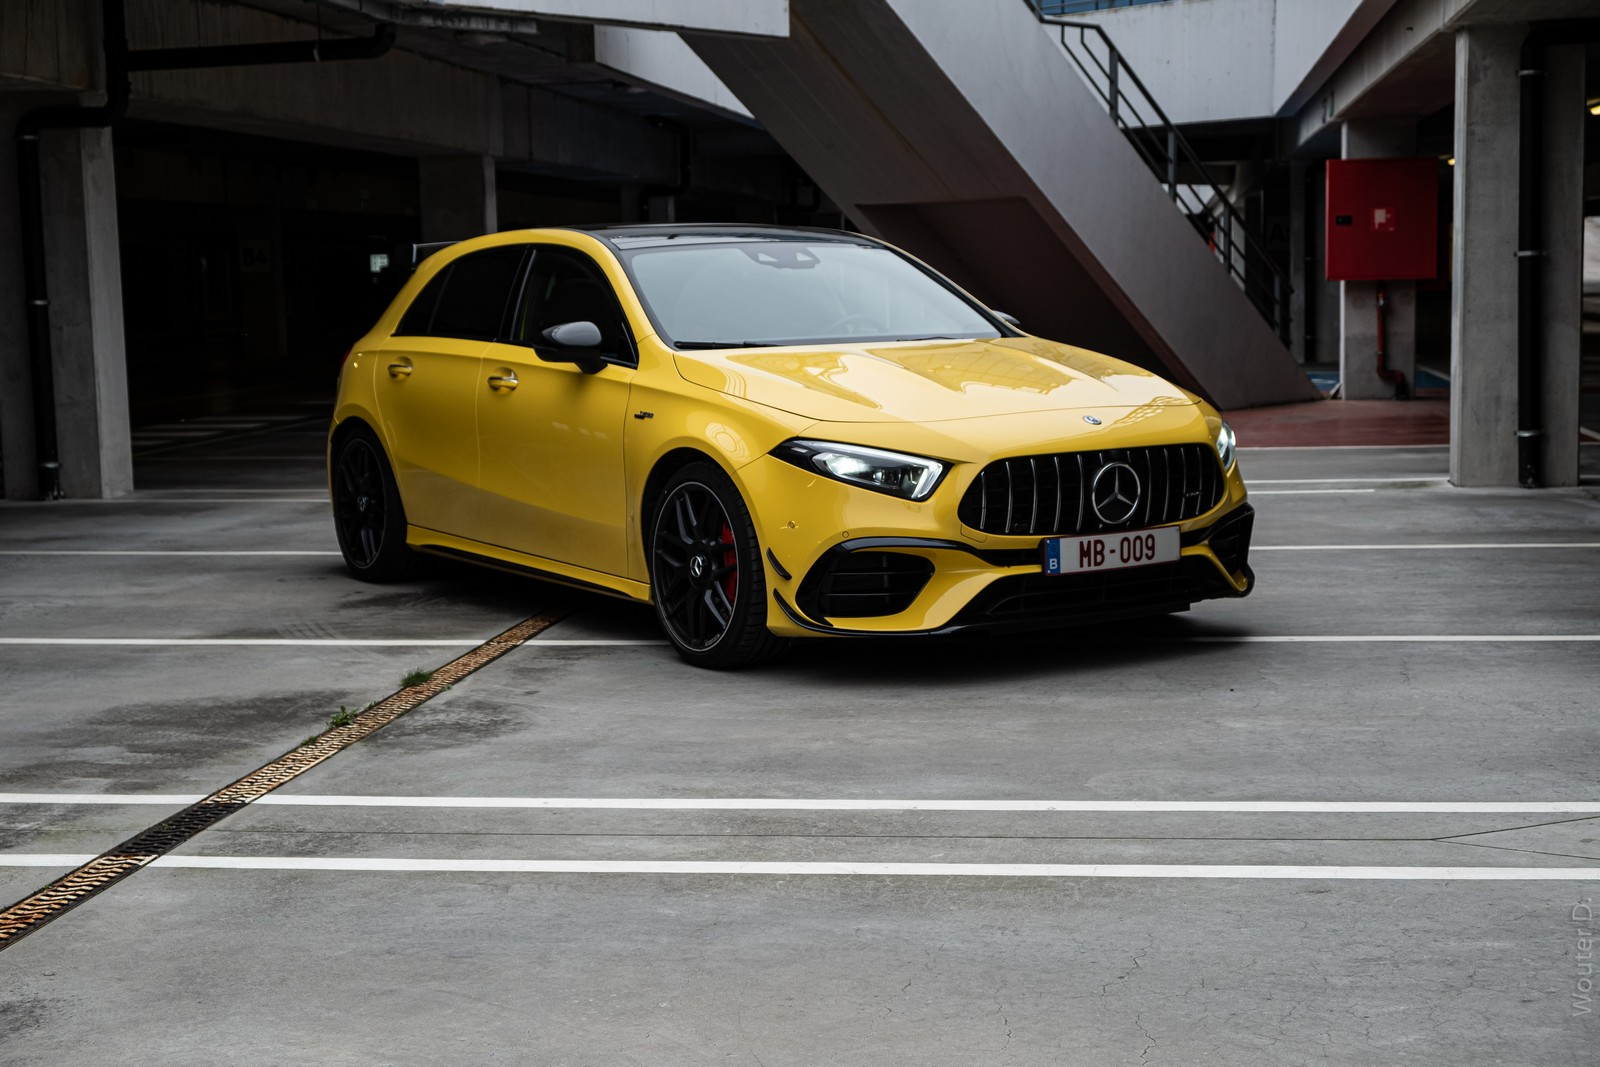 Gallery: 2020 Mercedes-AMG A45 S